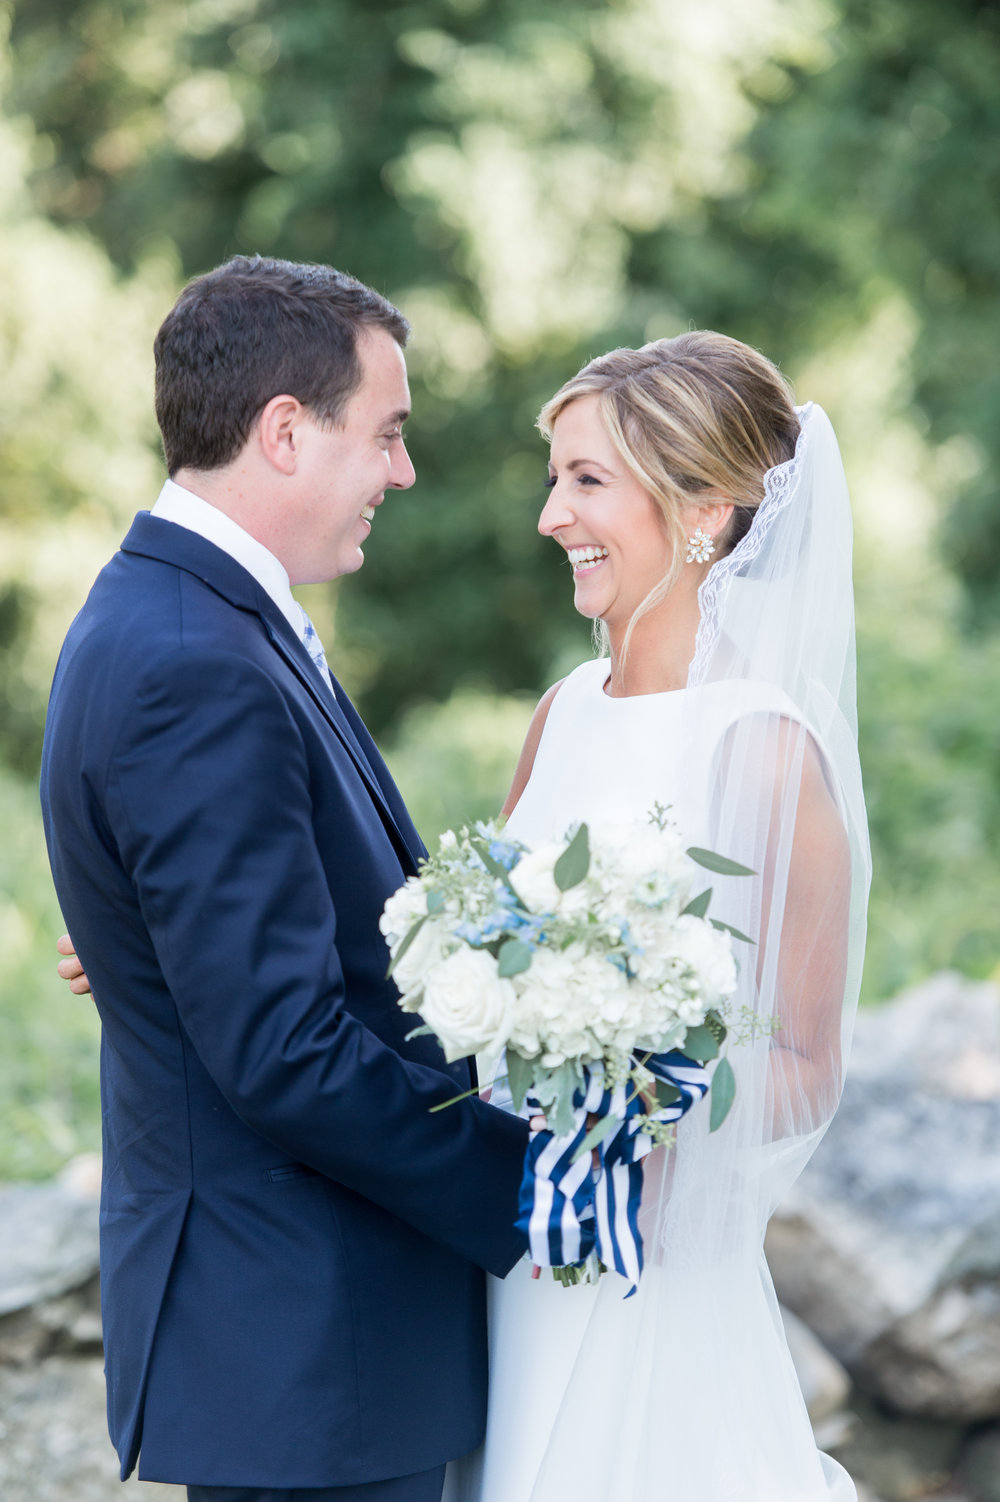 navy periwinkle preppy nautical summer wedding color palette inspiration